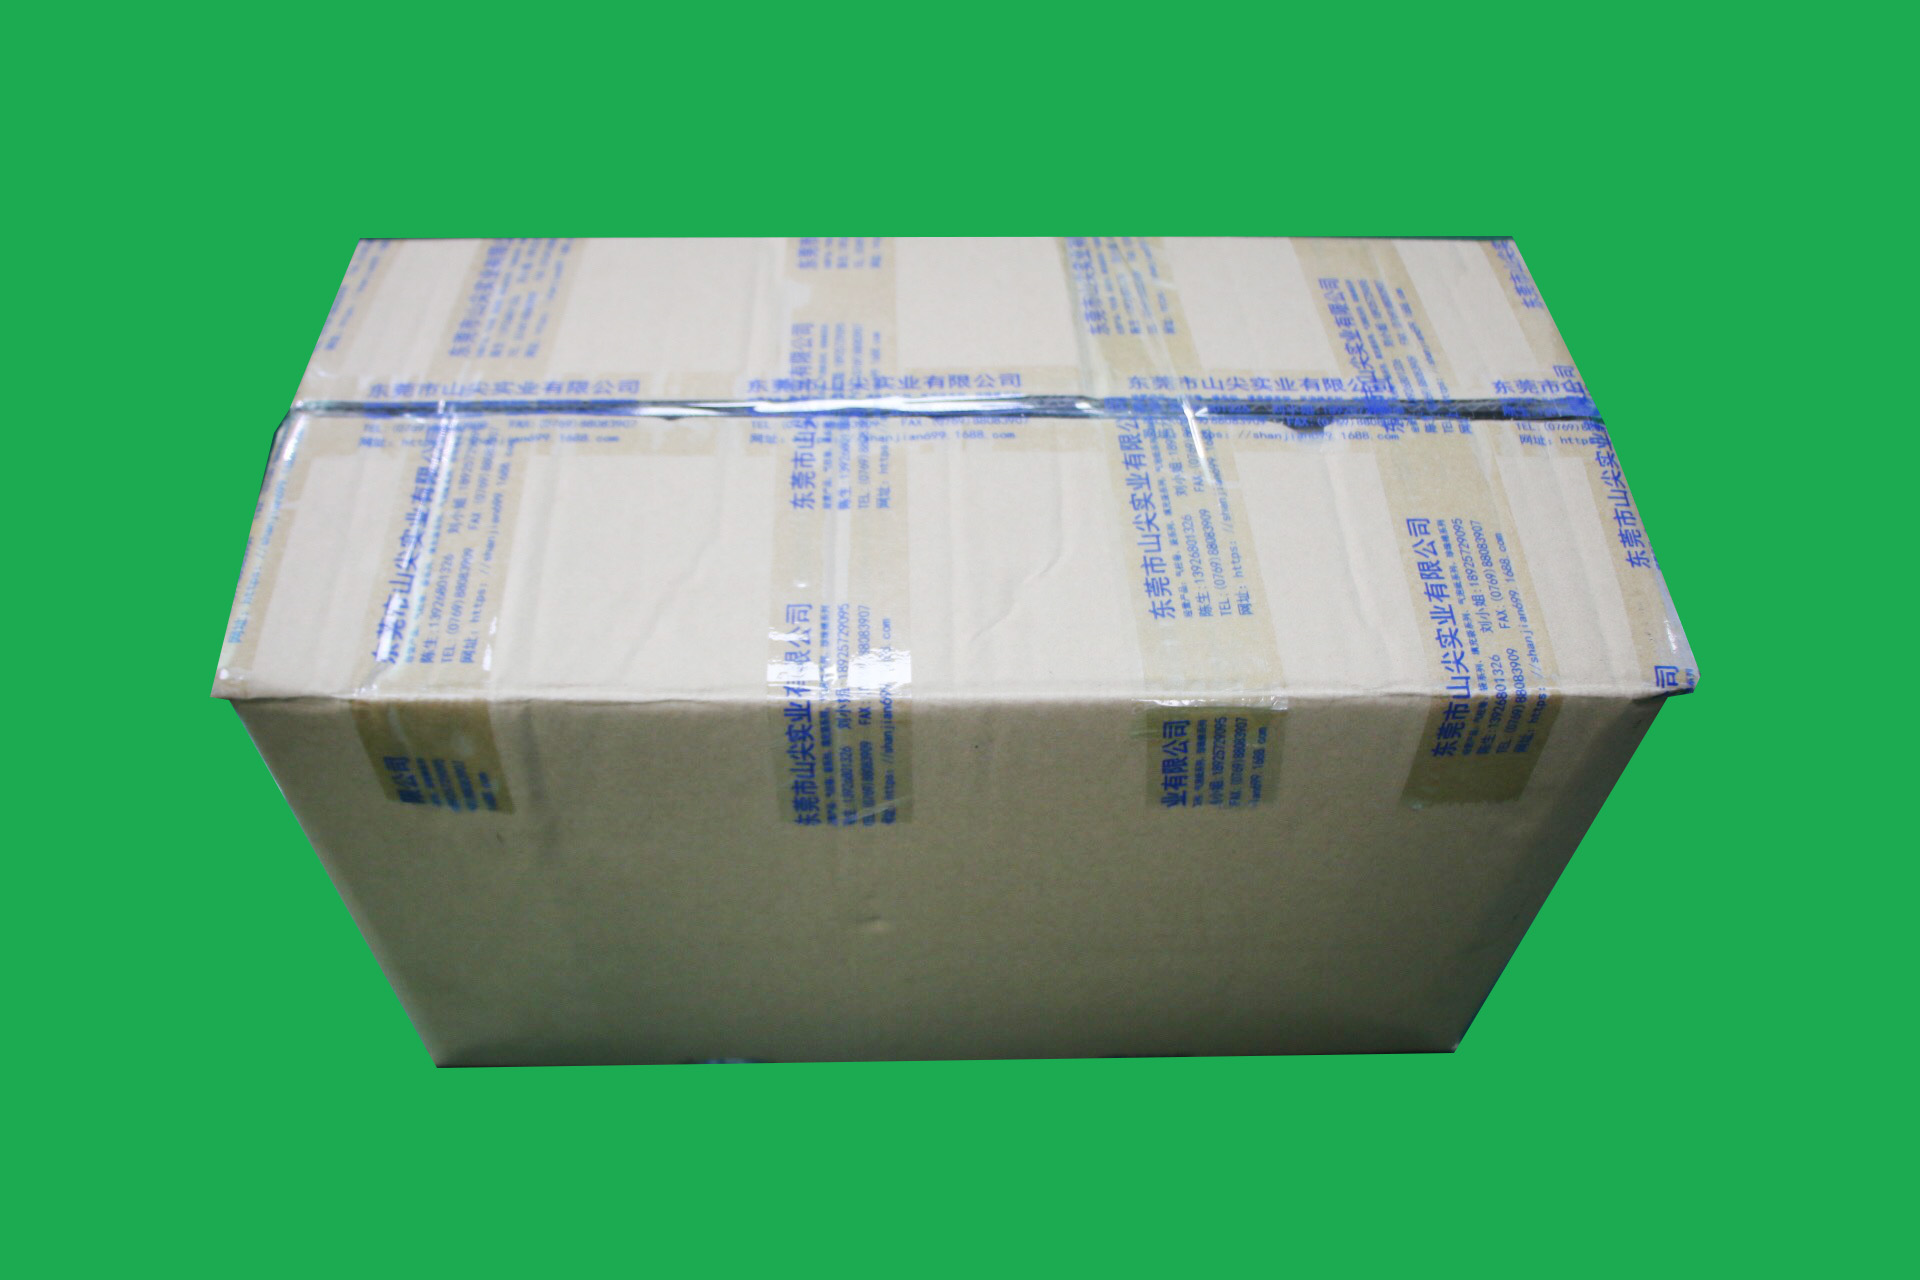 Sunshinepack ODM air bag pillow Suppliers for package-6